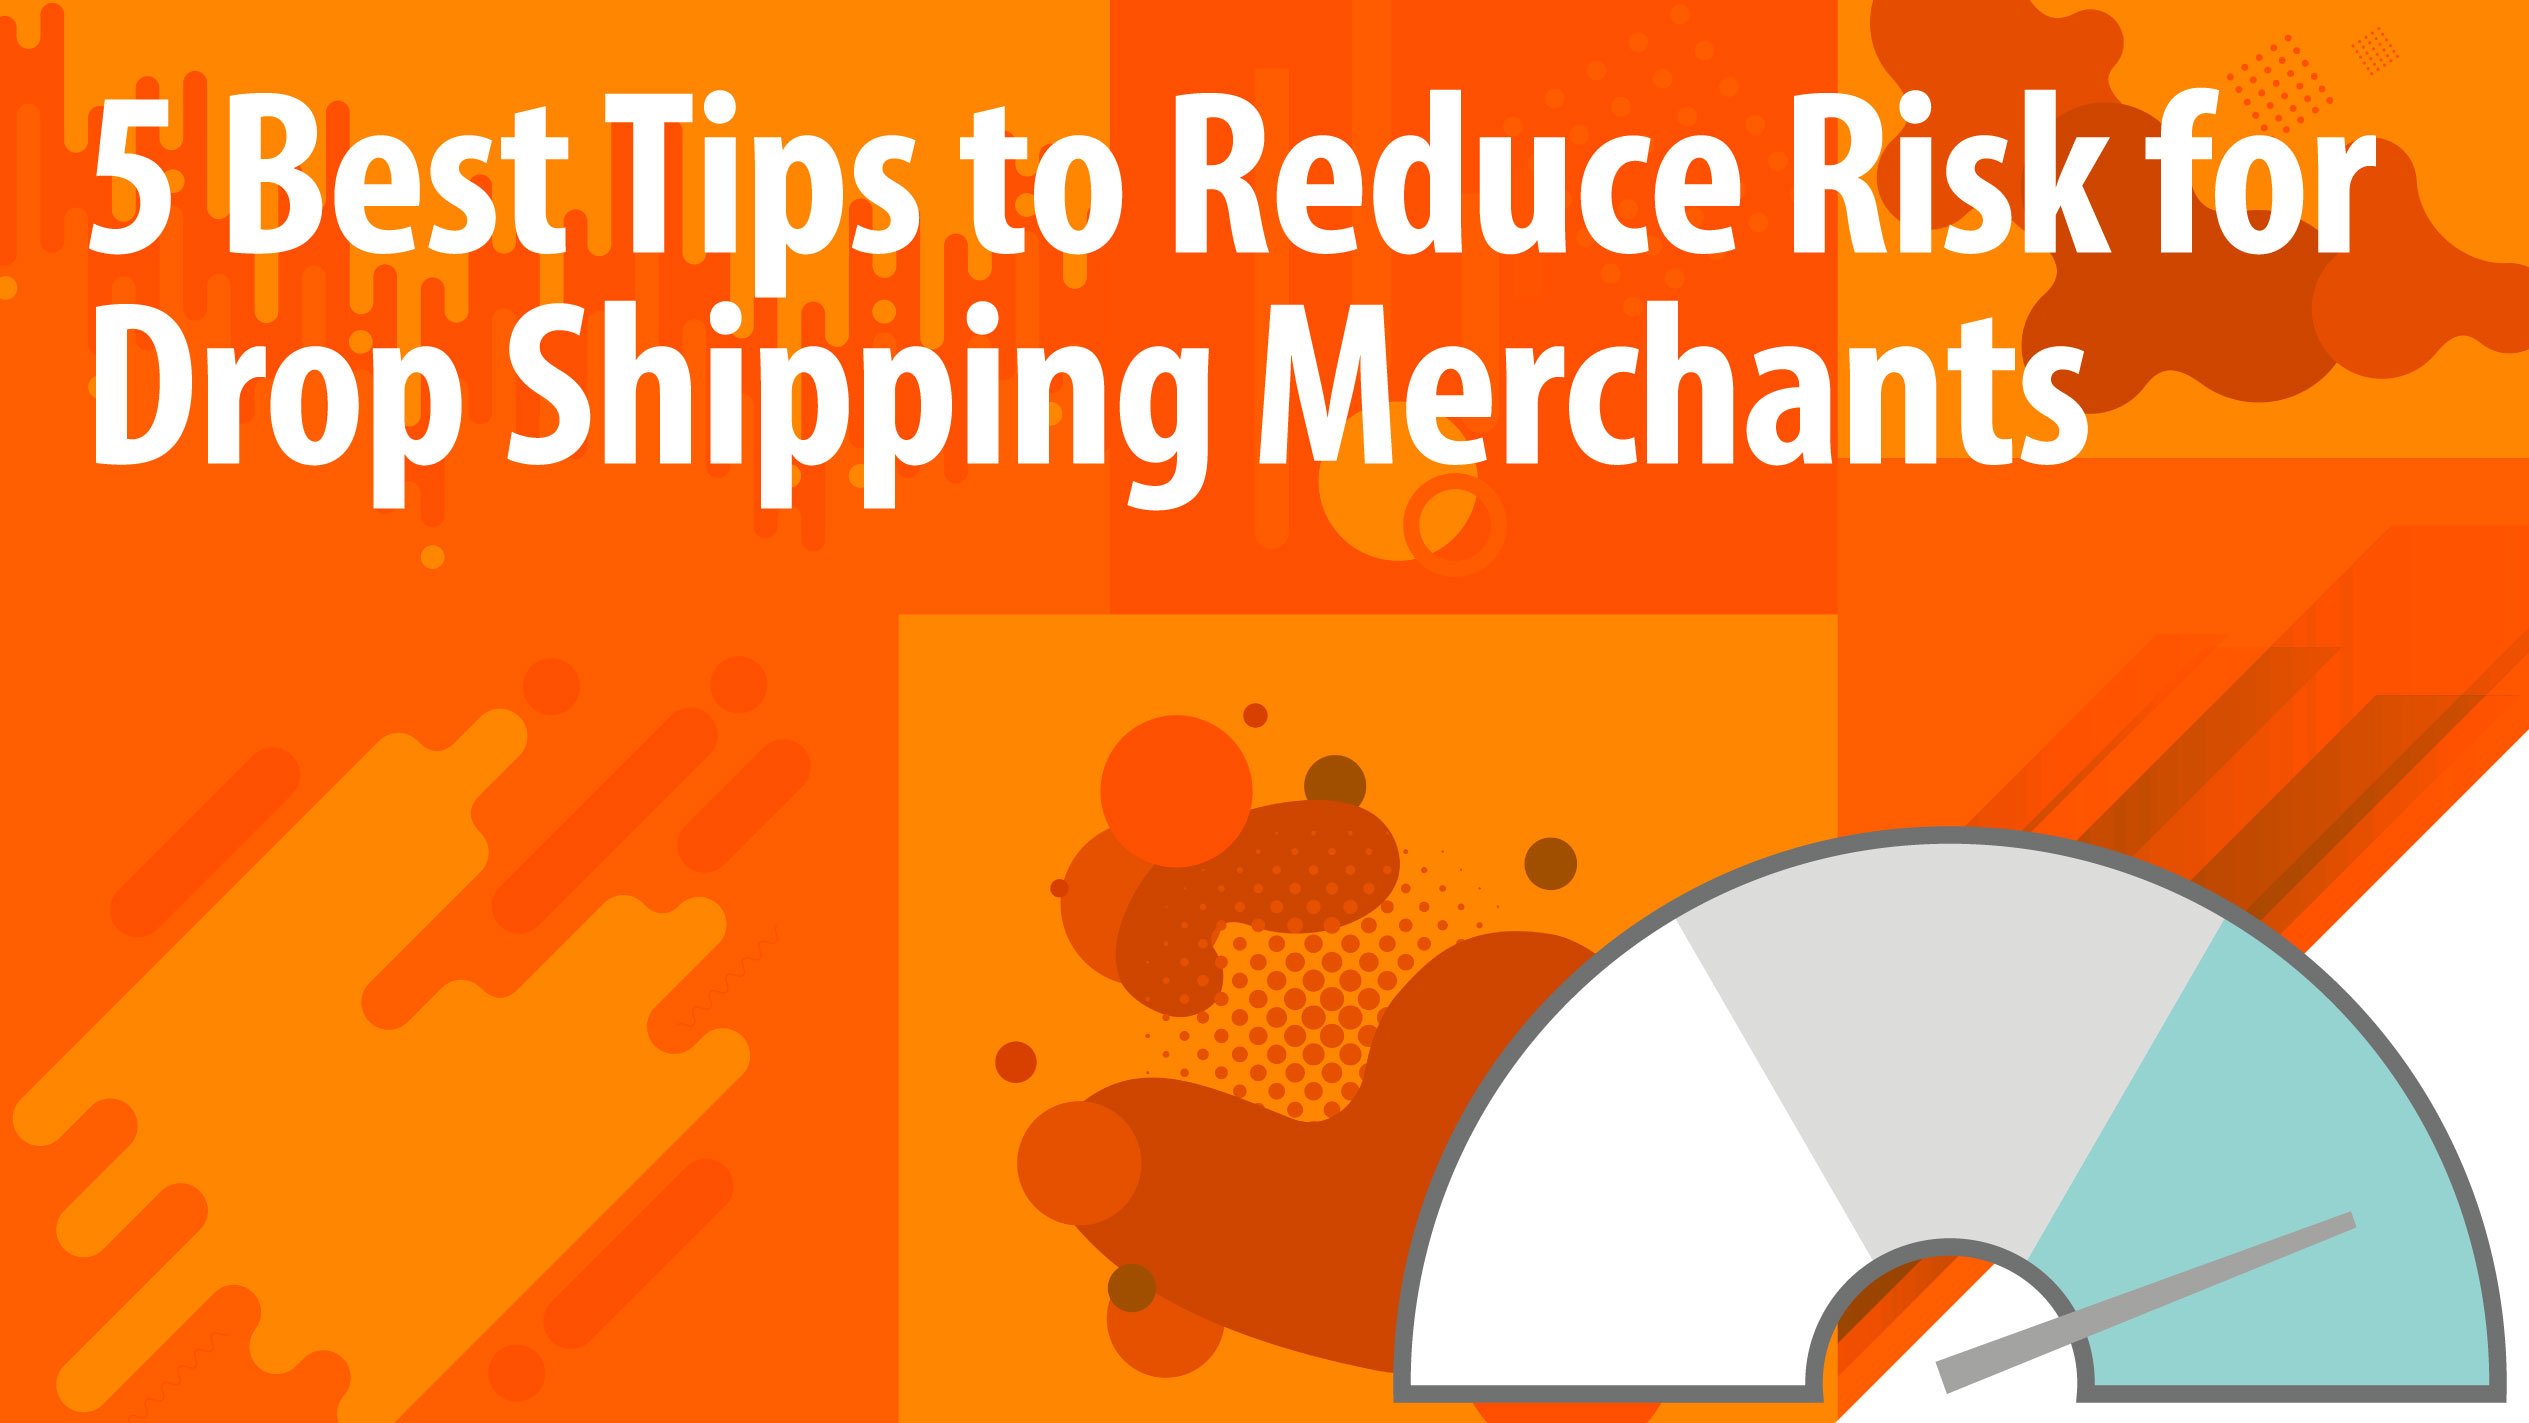 5 Best Tips to Reduce Risk for Drop Shipping Merchants